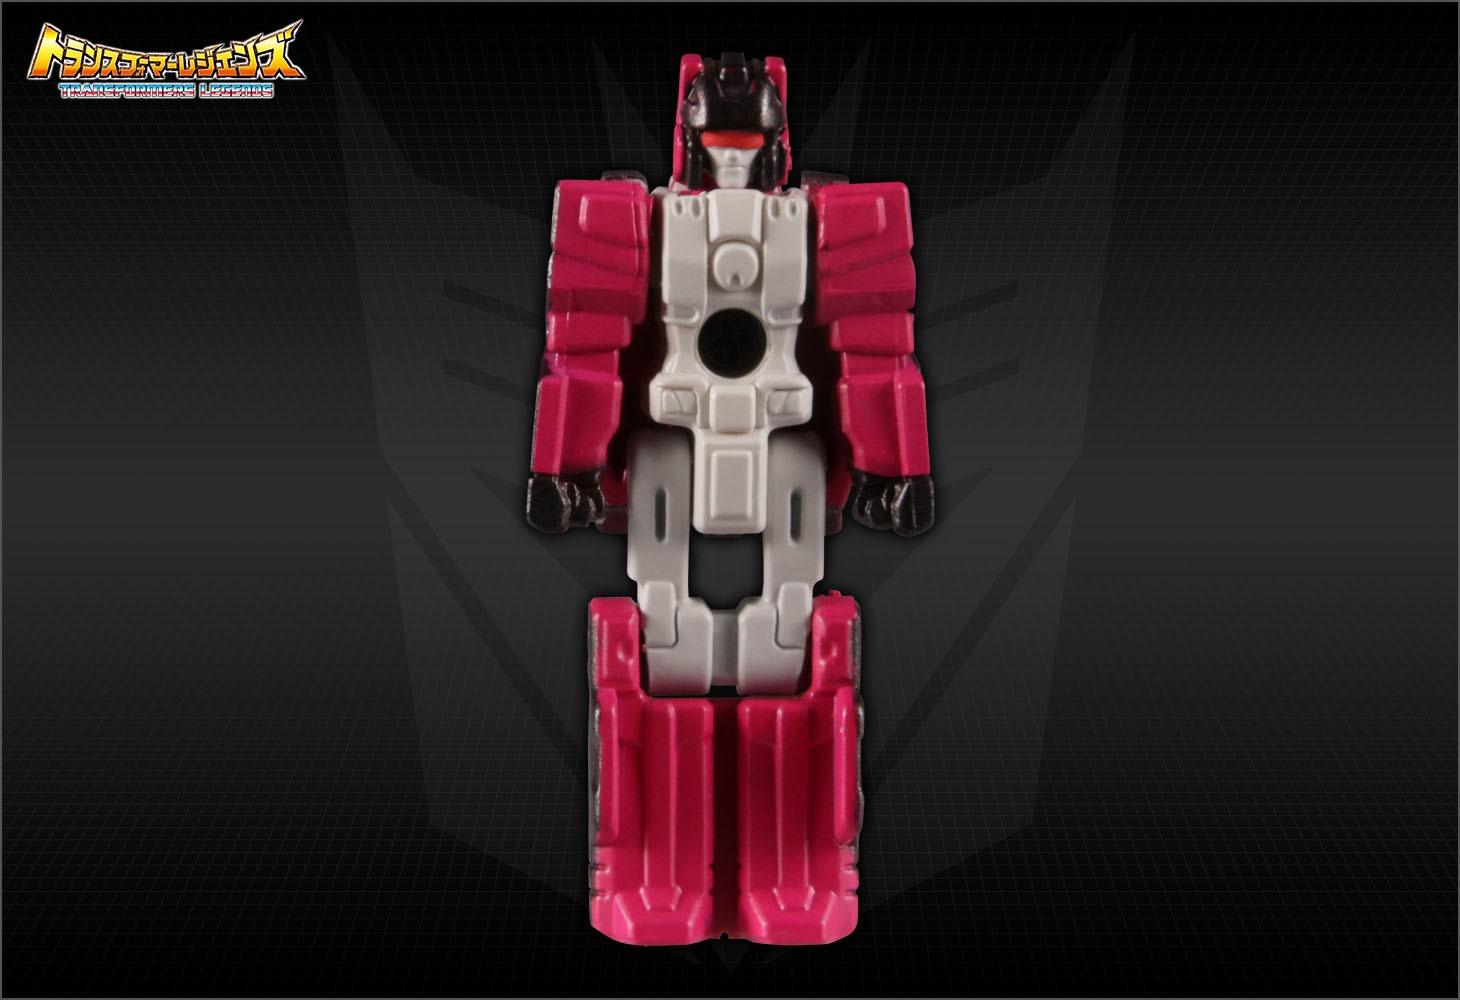 Transformers News: New Images of Takara Tomy Legends Misfire, Doublecross, Triggerhappy, Broadside, Targetmasters